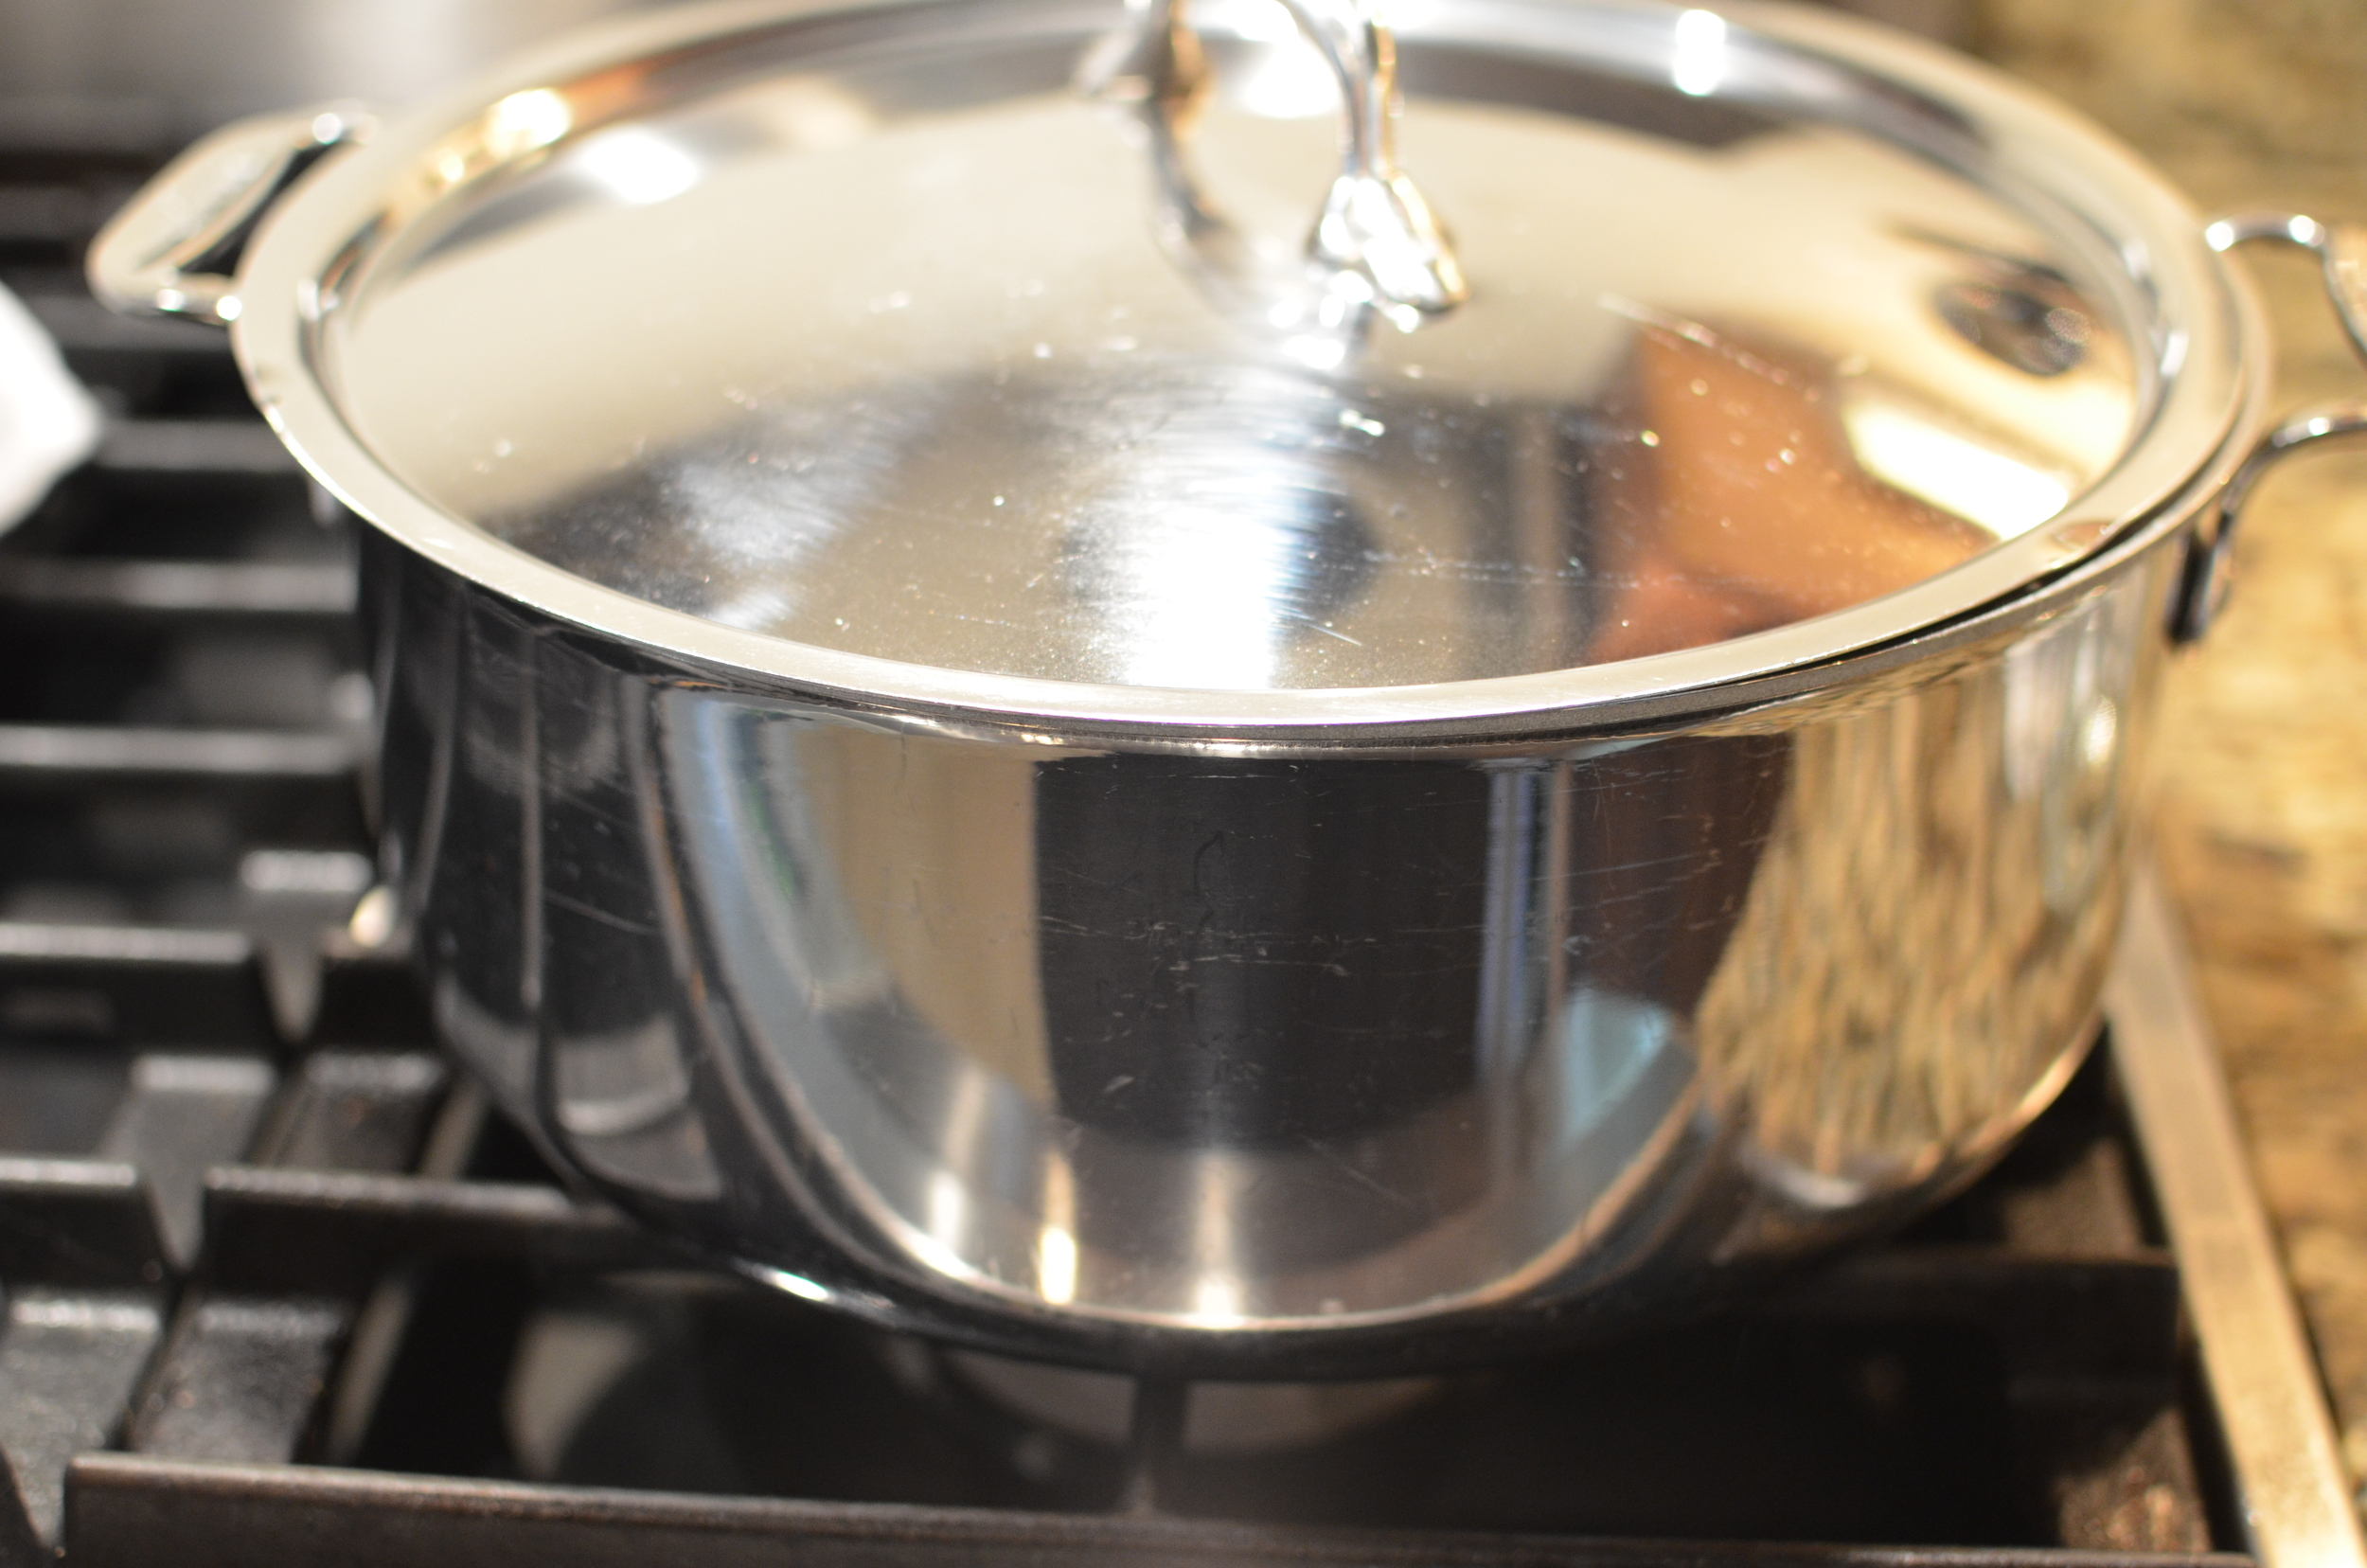 Cover the pan with a lid and let it rest for about an hour.